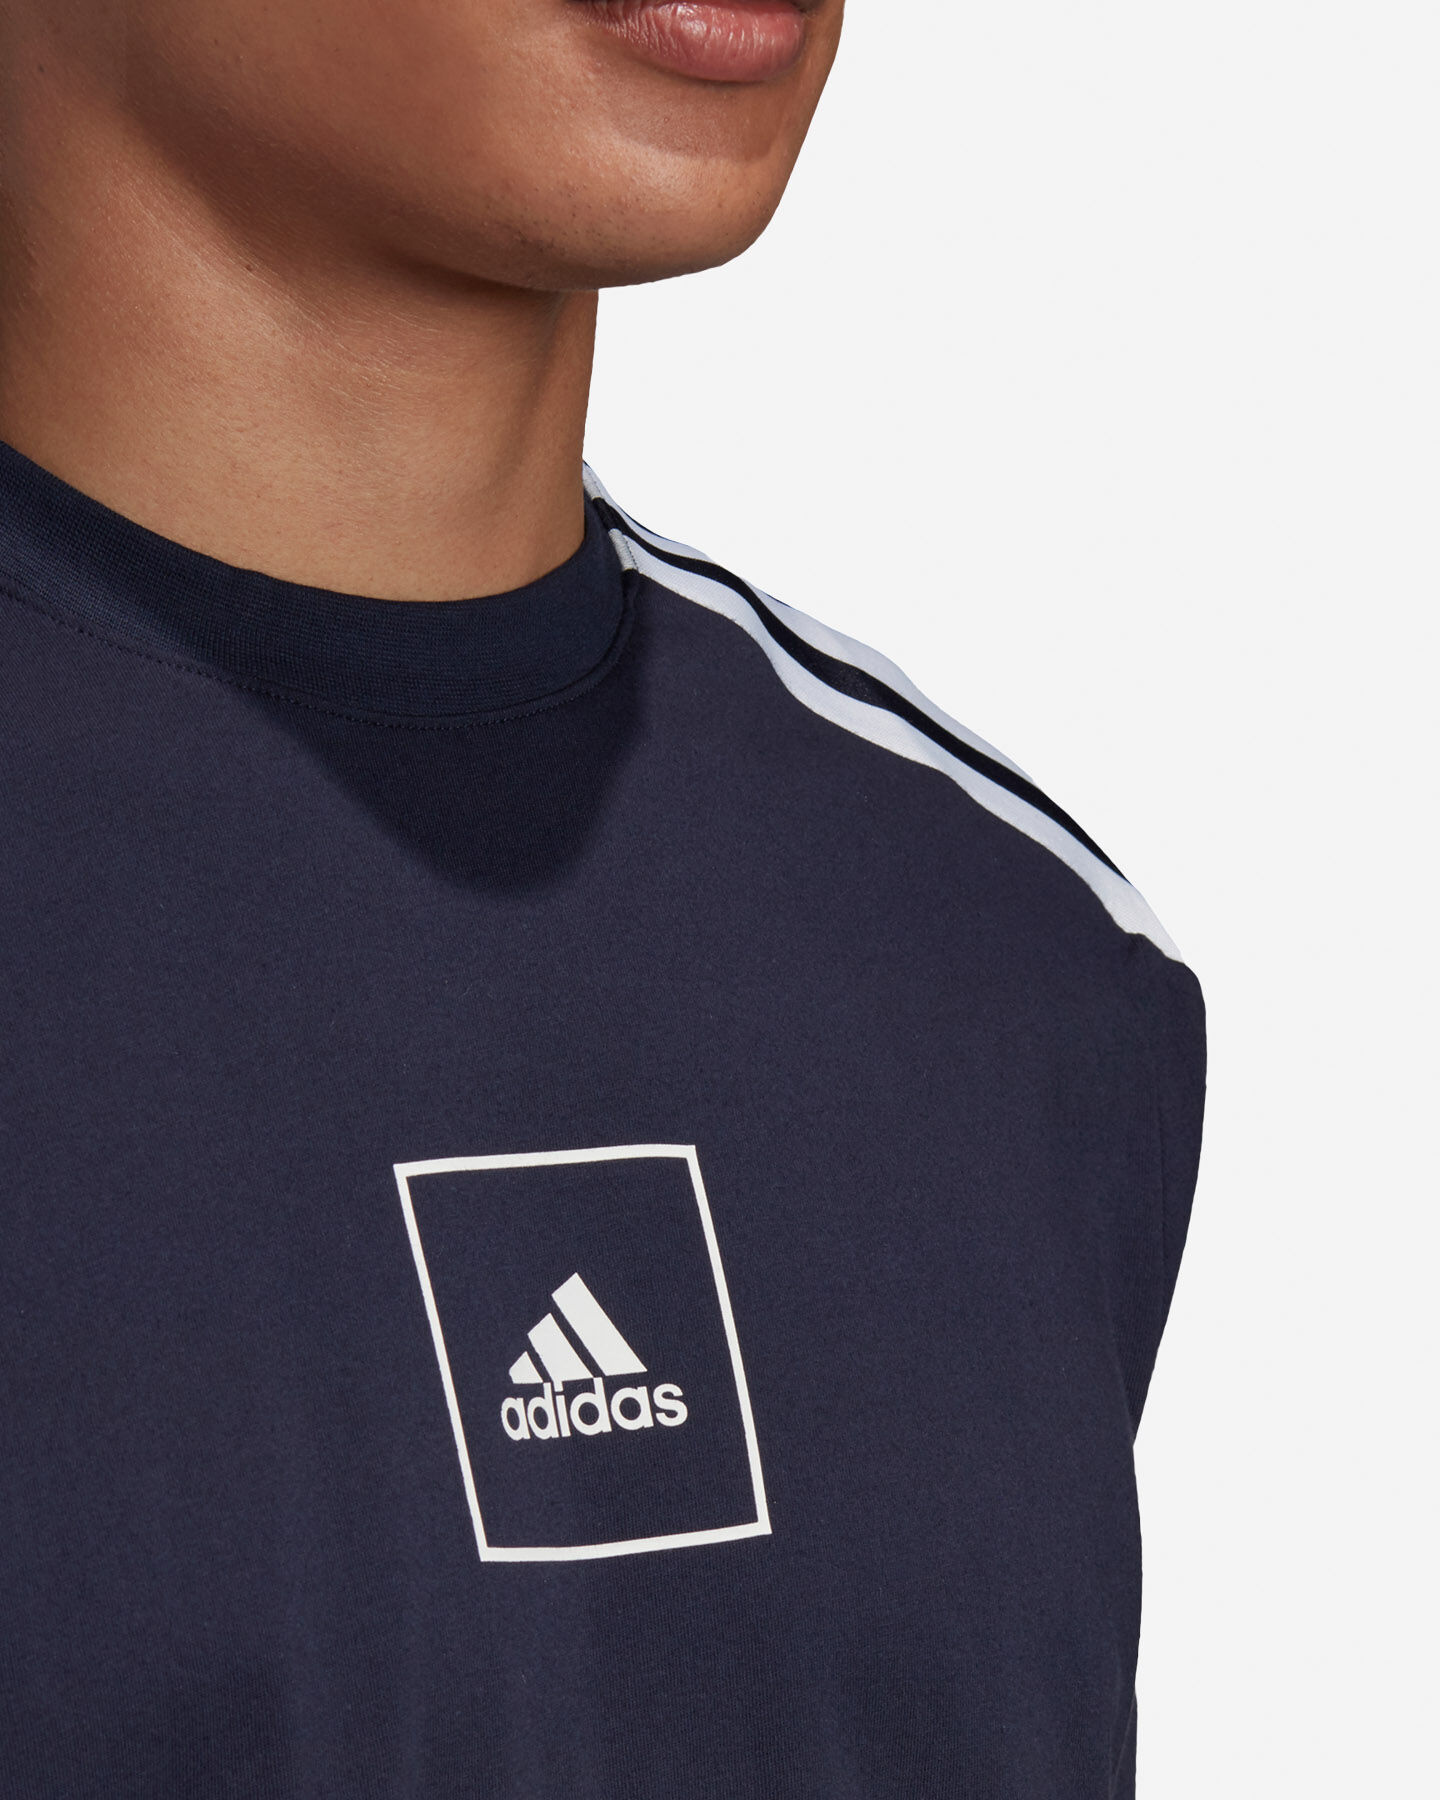 T-Shirt ADIDAS 3S TAPE M S5217933 scatto 5